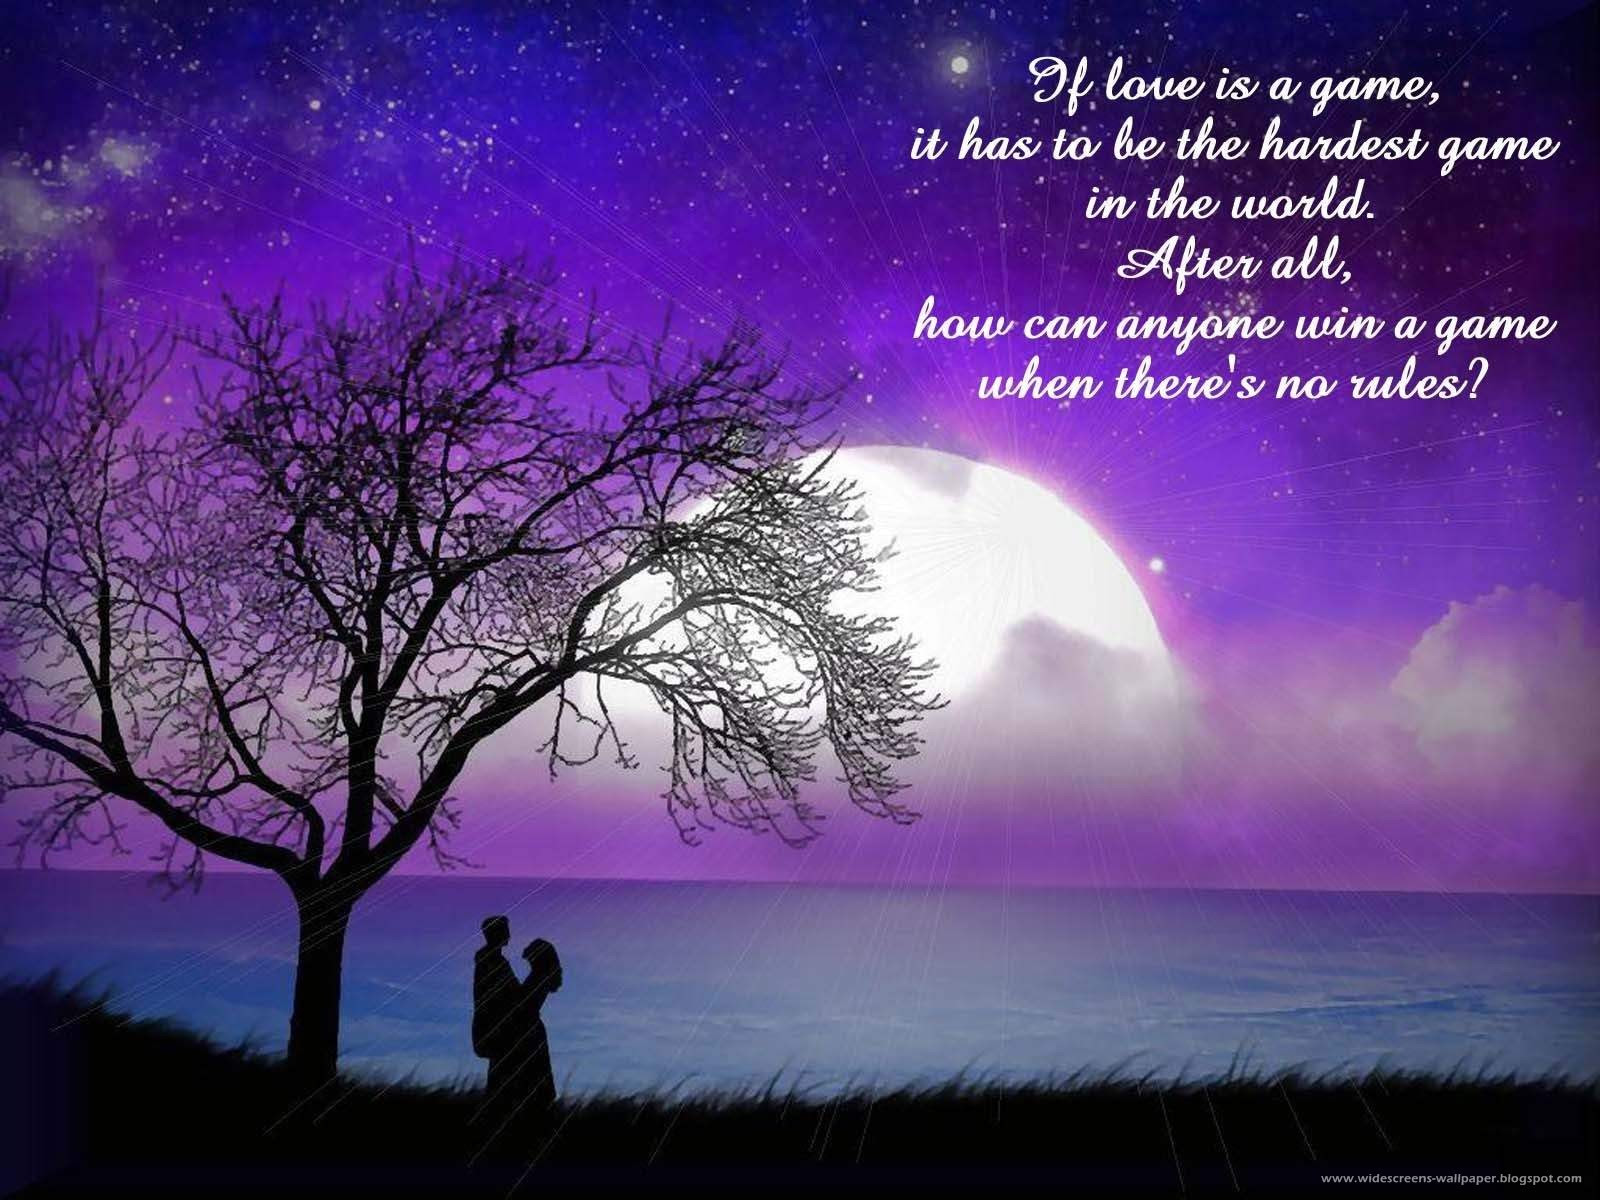 Romantic Love Quotes HD wallpaper Romantic Love